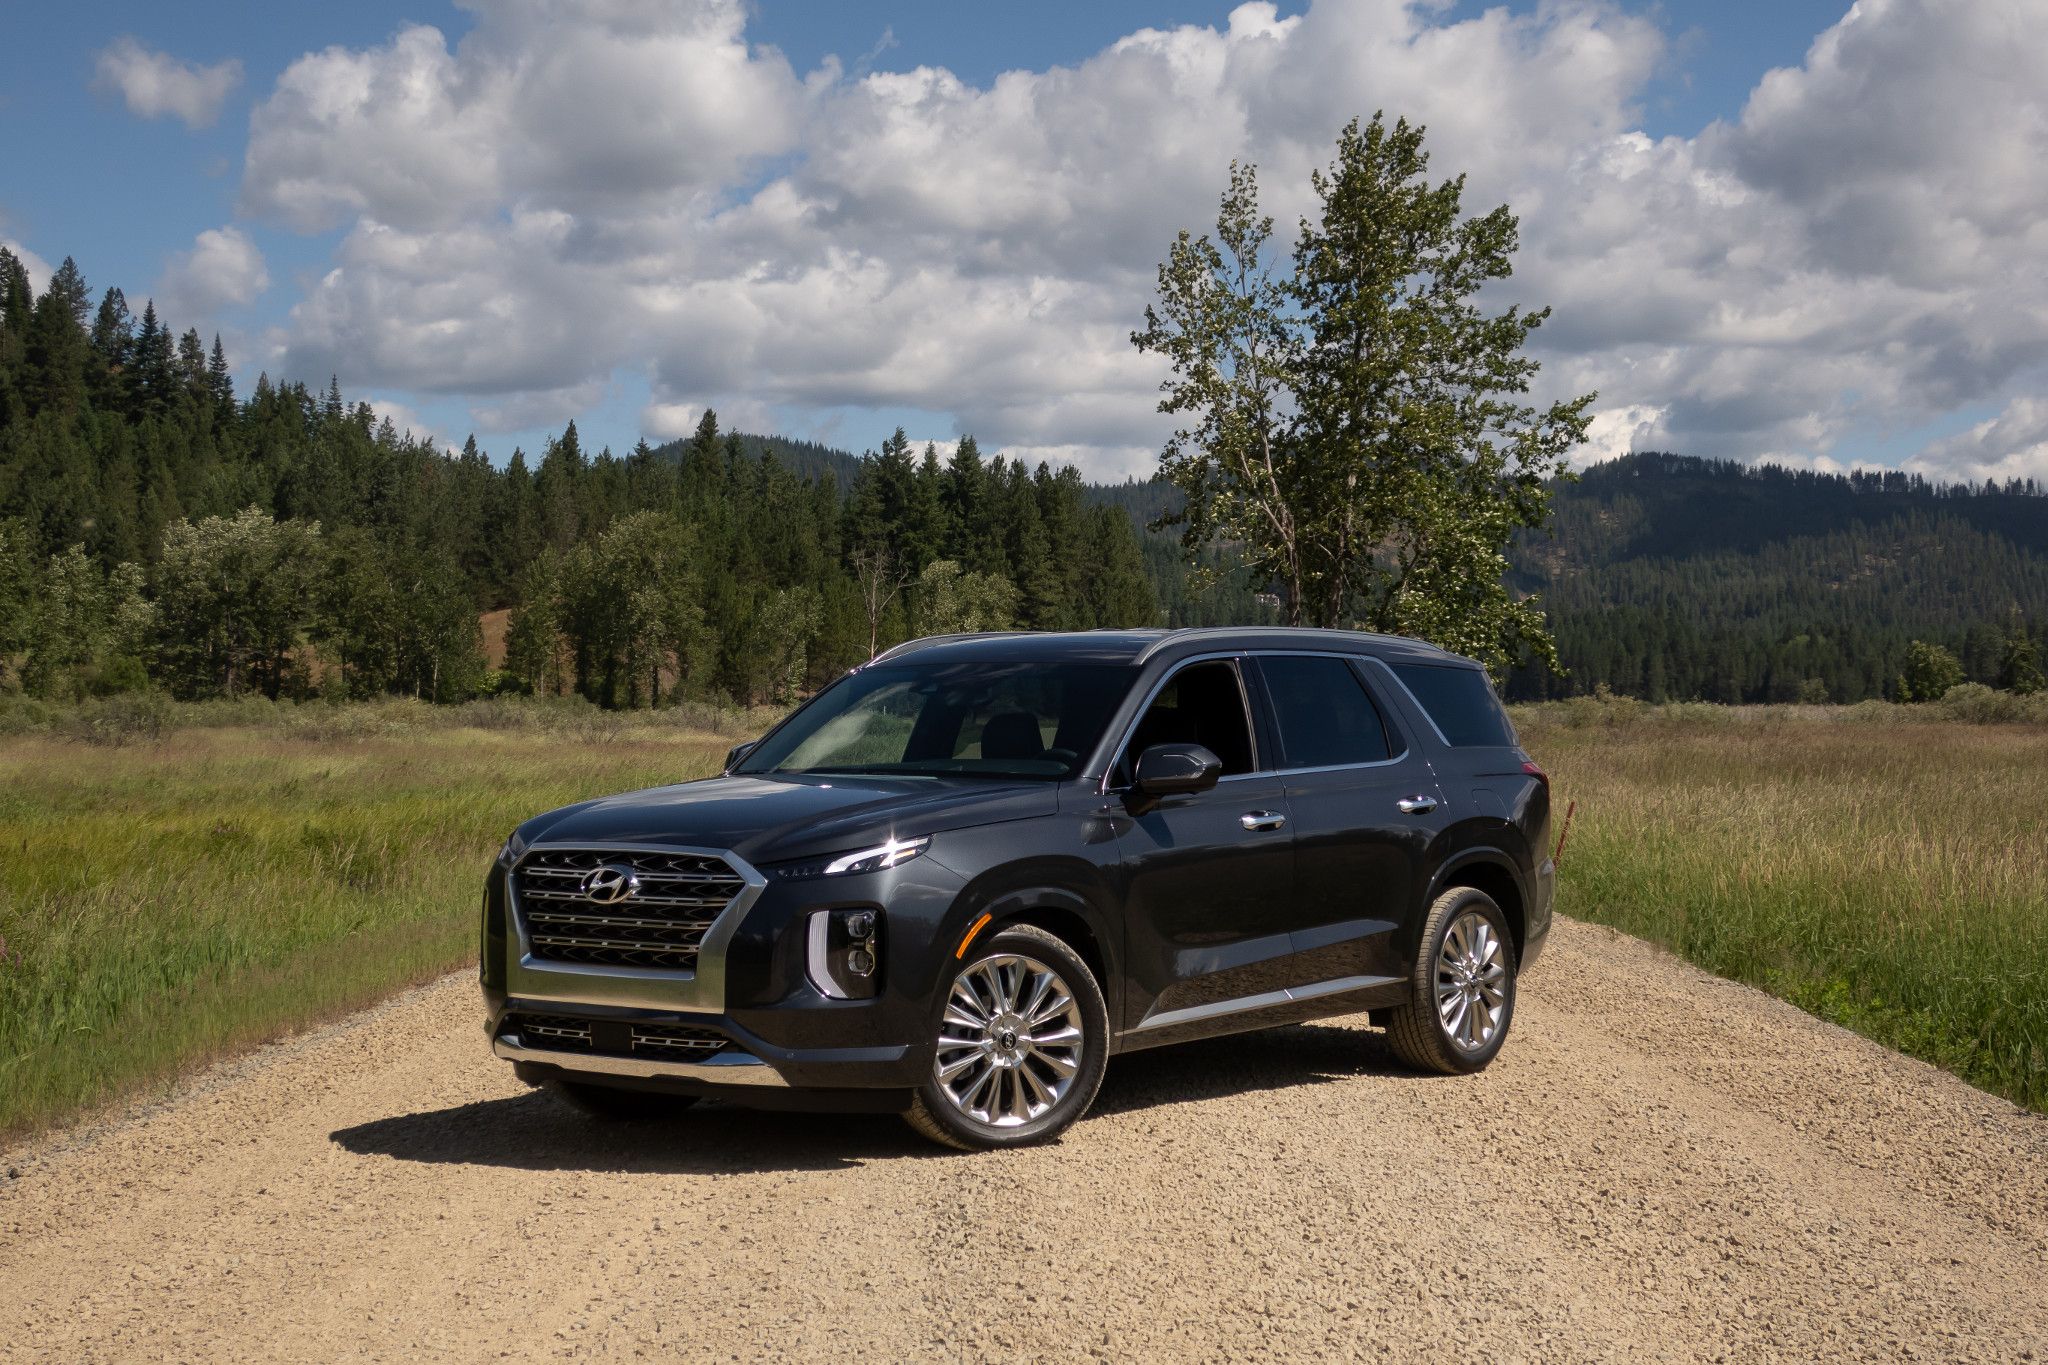 2020 Hyundai Palisade First Drive: Same, Same, But Better?